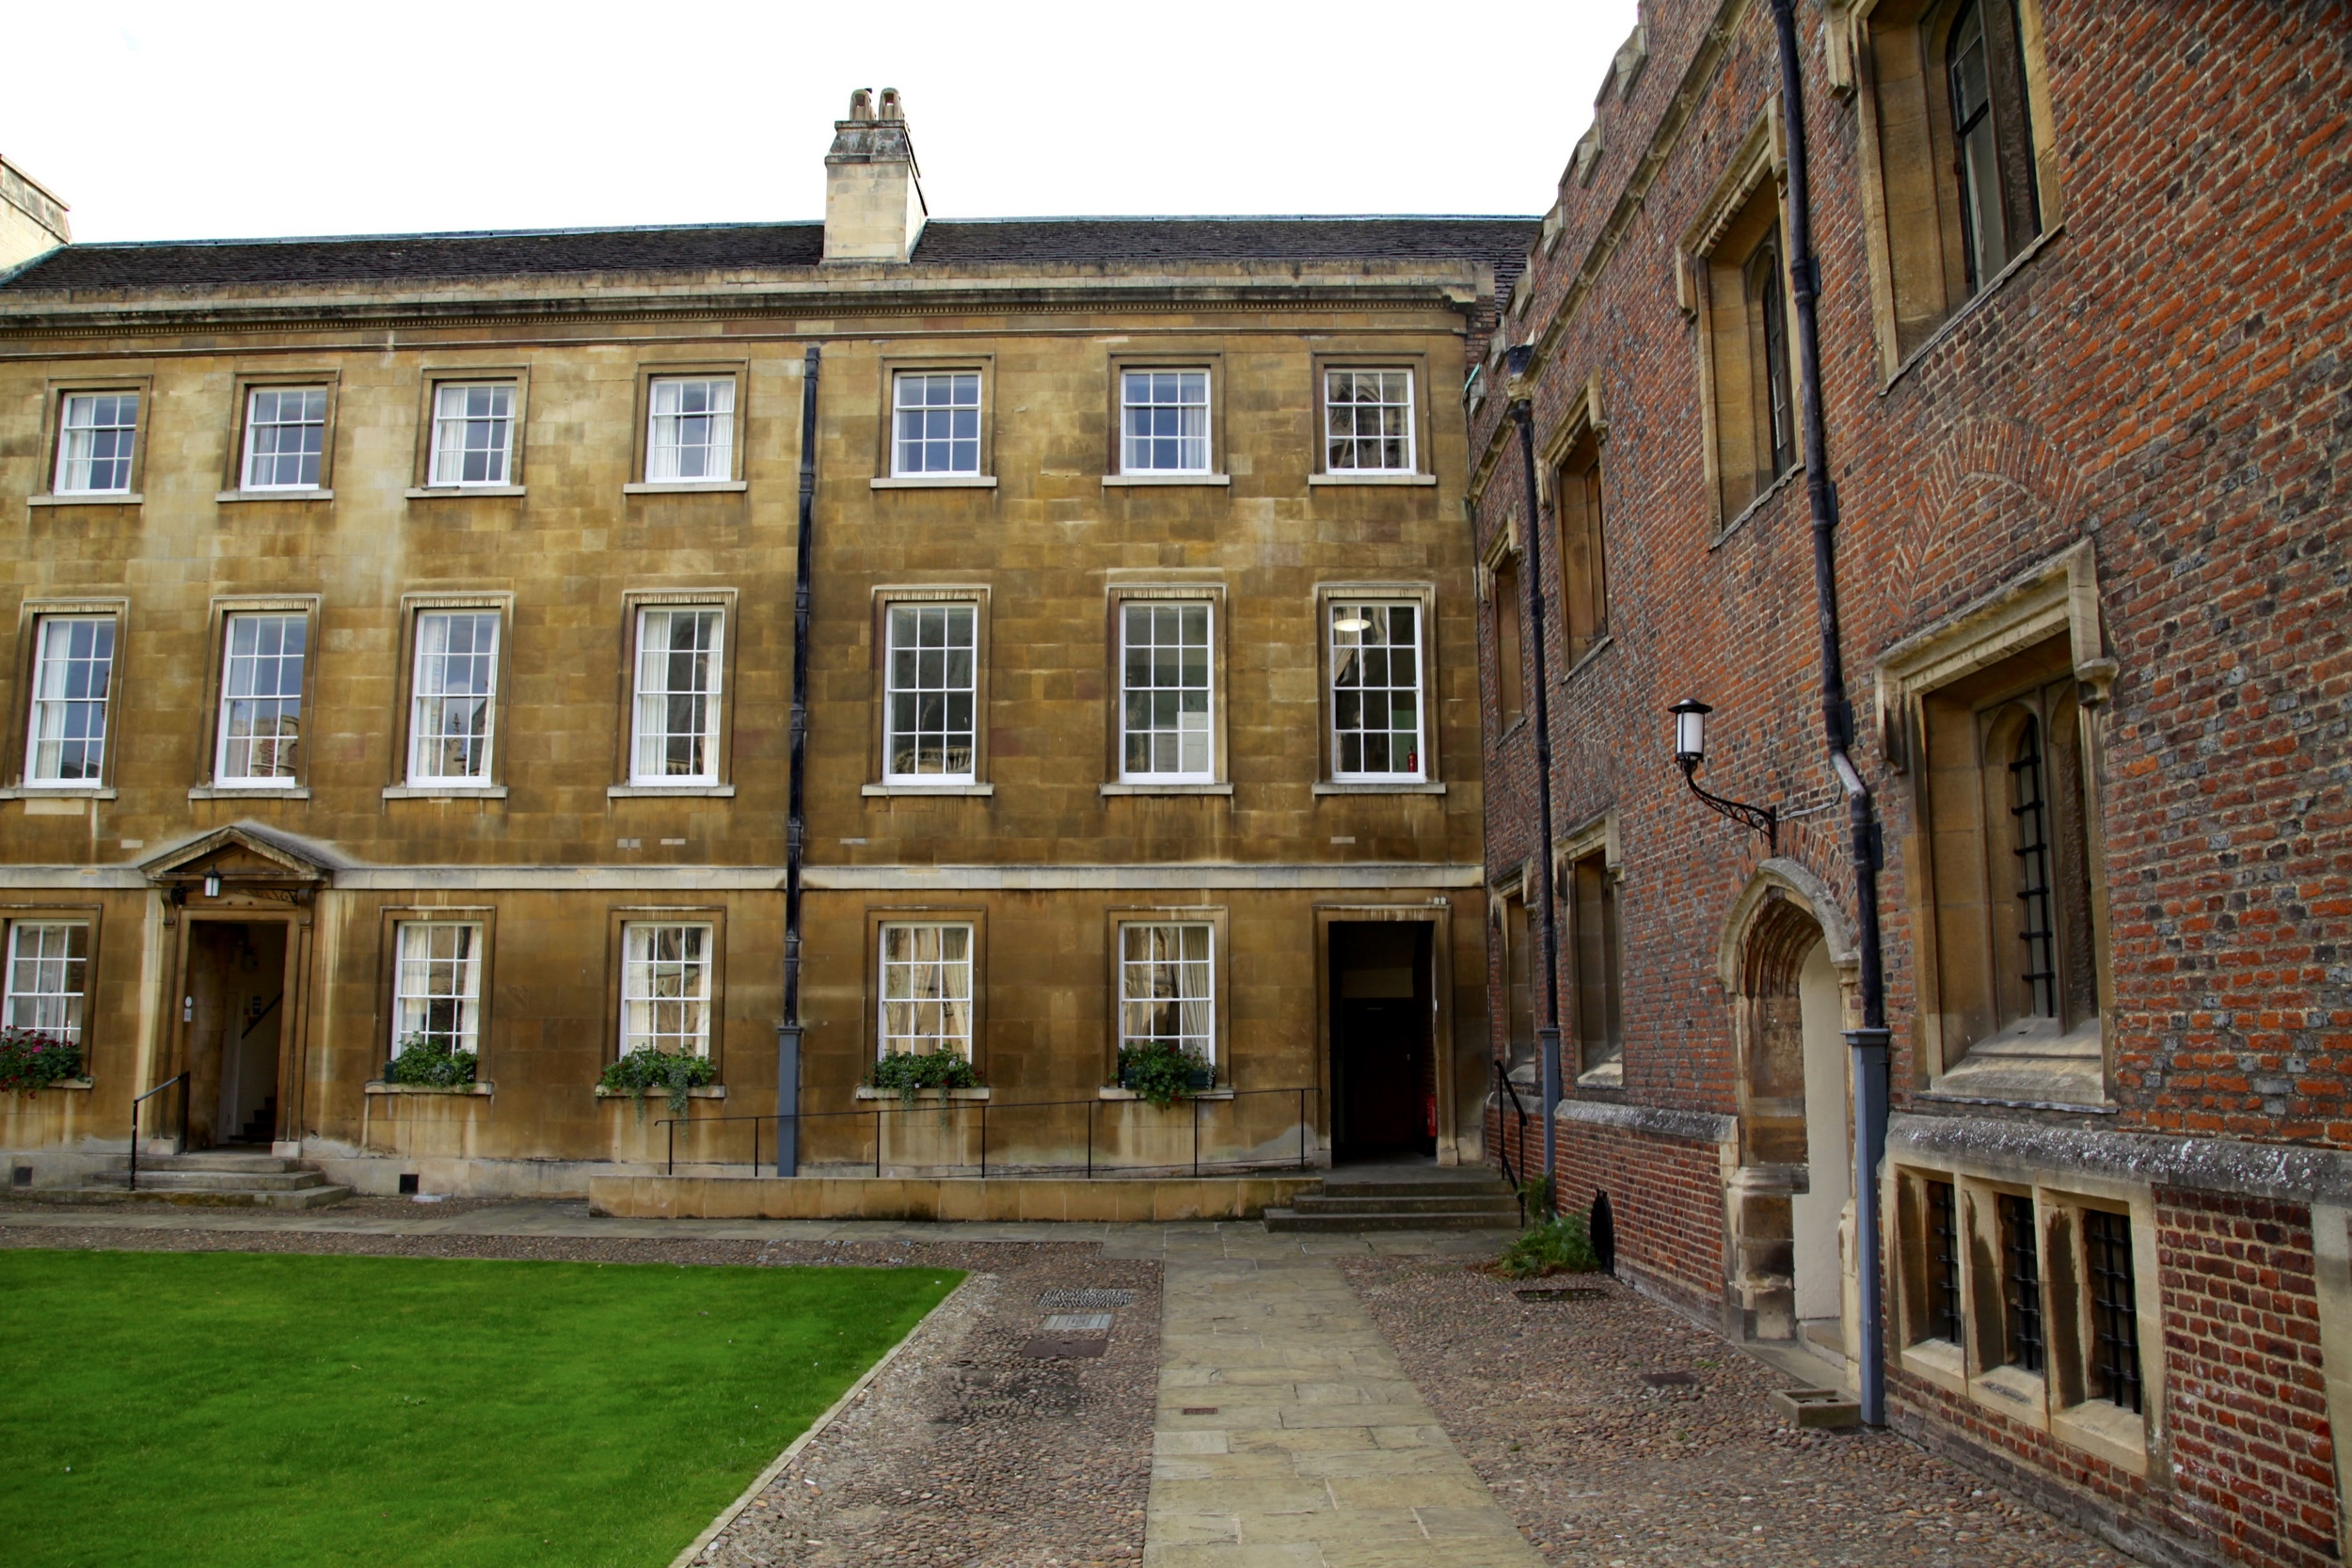 Wordsworth's rooms on the first floor of the first court of St John's College, Cambridge